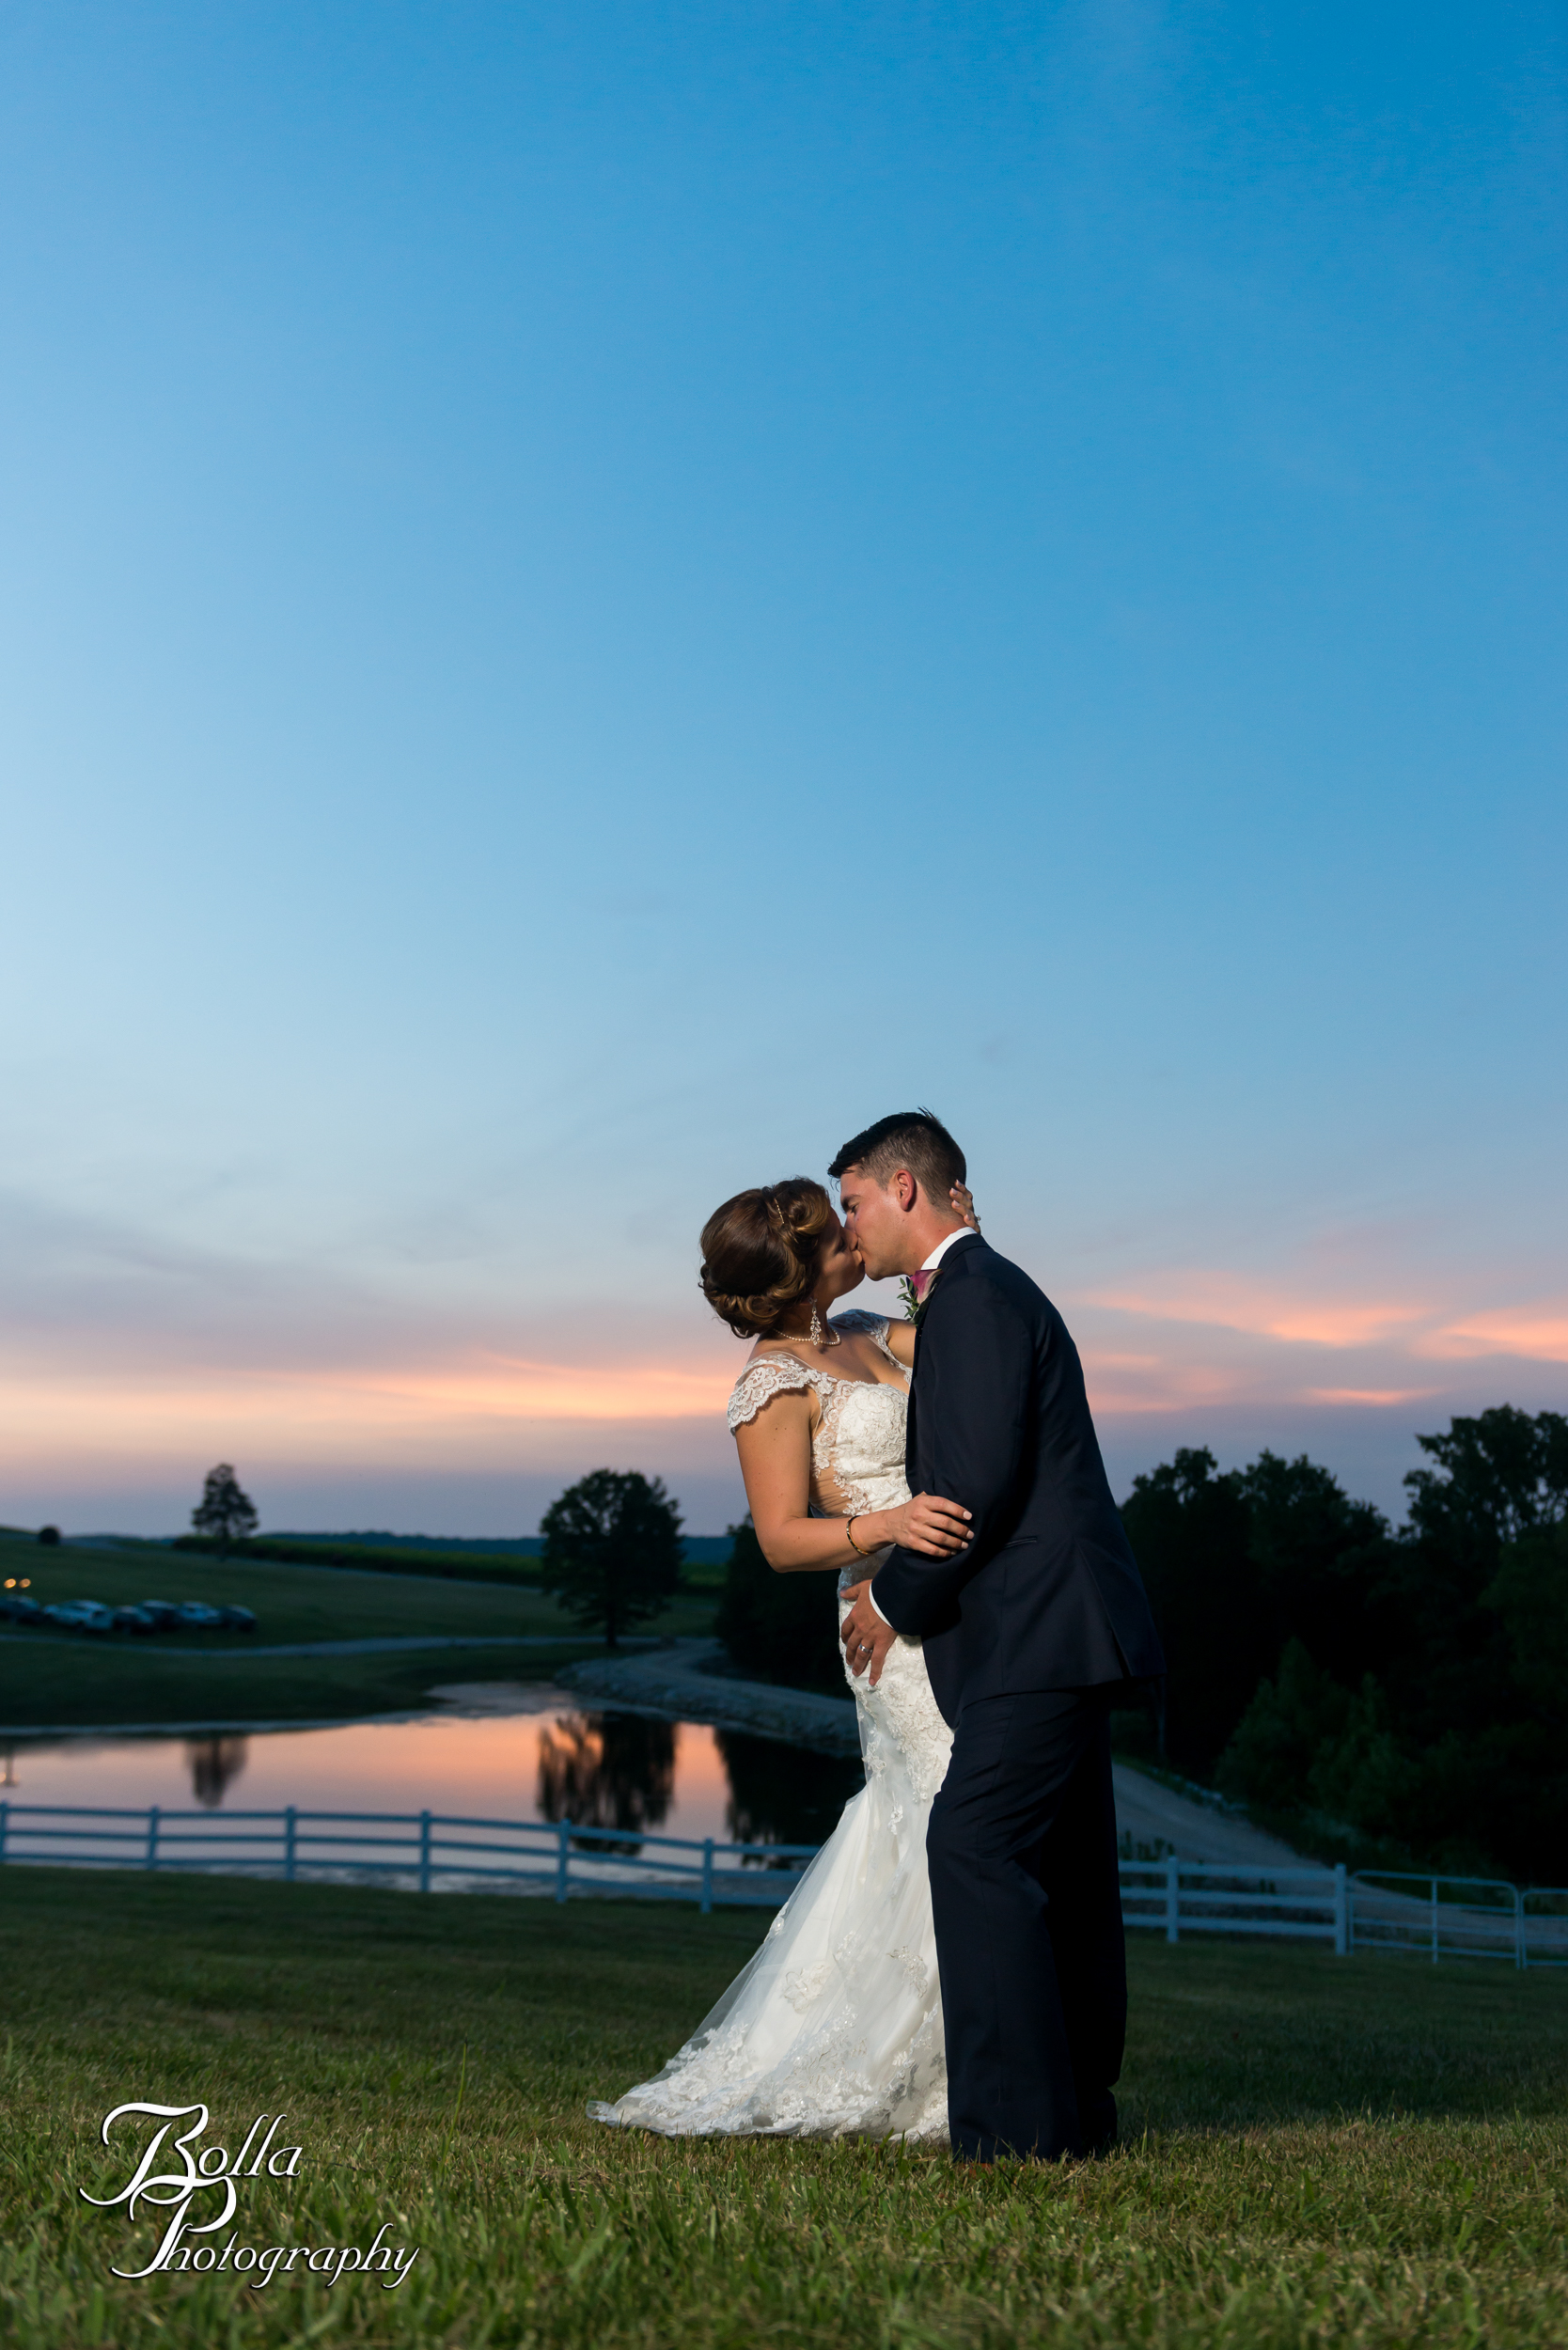 Bolla_photography_edwardsville_wedding_photographer_st_louis_weddings_Chaumette_winery_Mikusch-0001.jpg